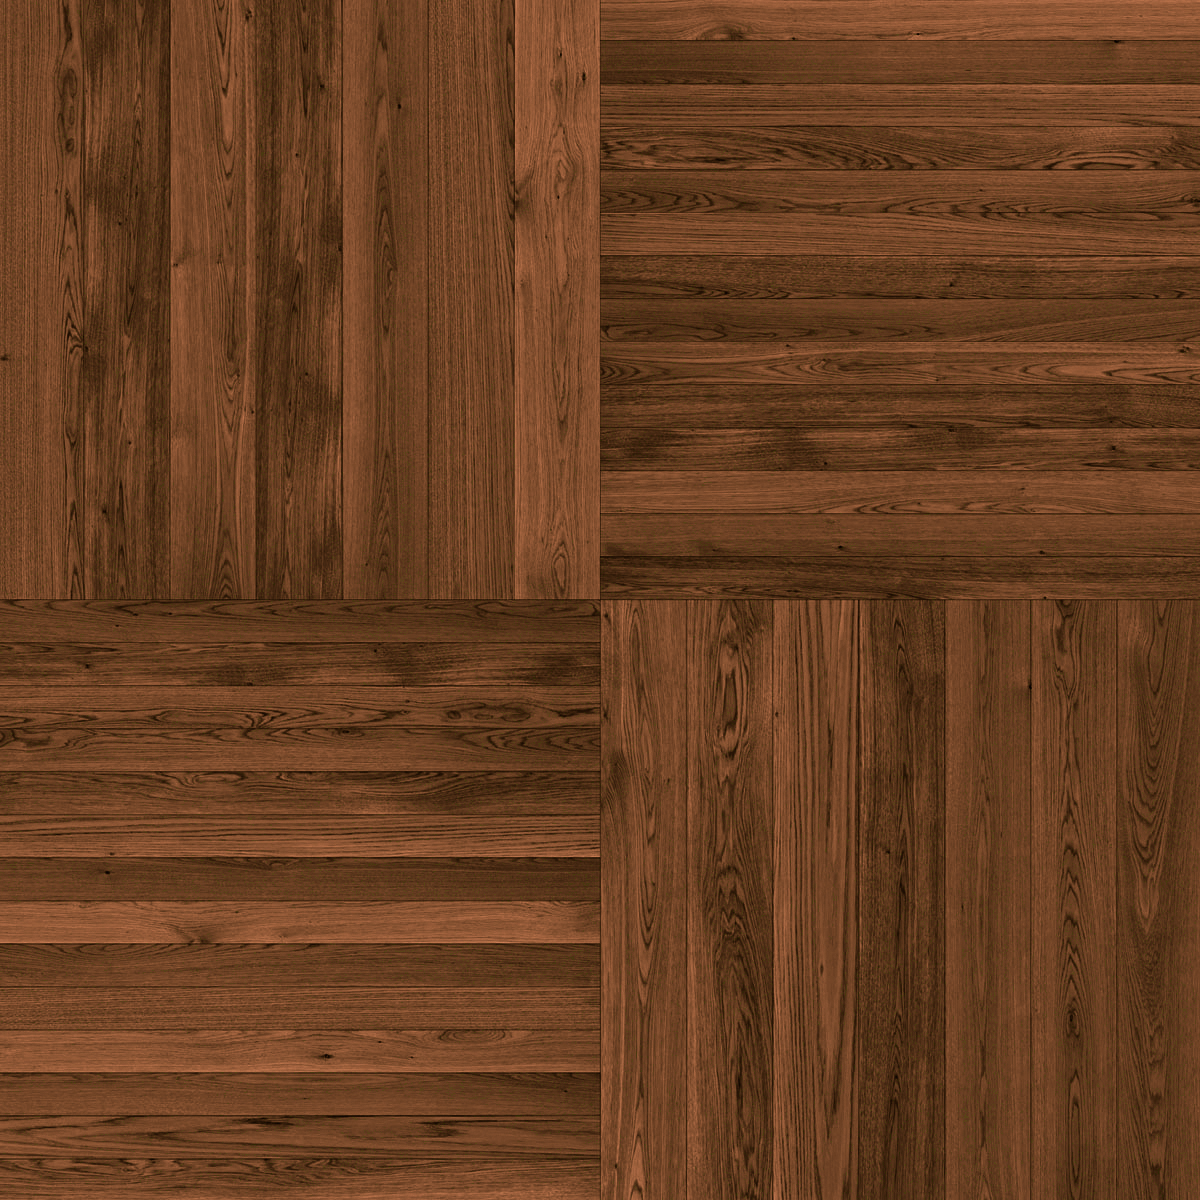 wood flooring texture seamless. Update Tileable Wood Floors Texture - Preview #2 Flooring Seamless